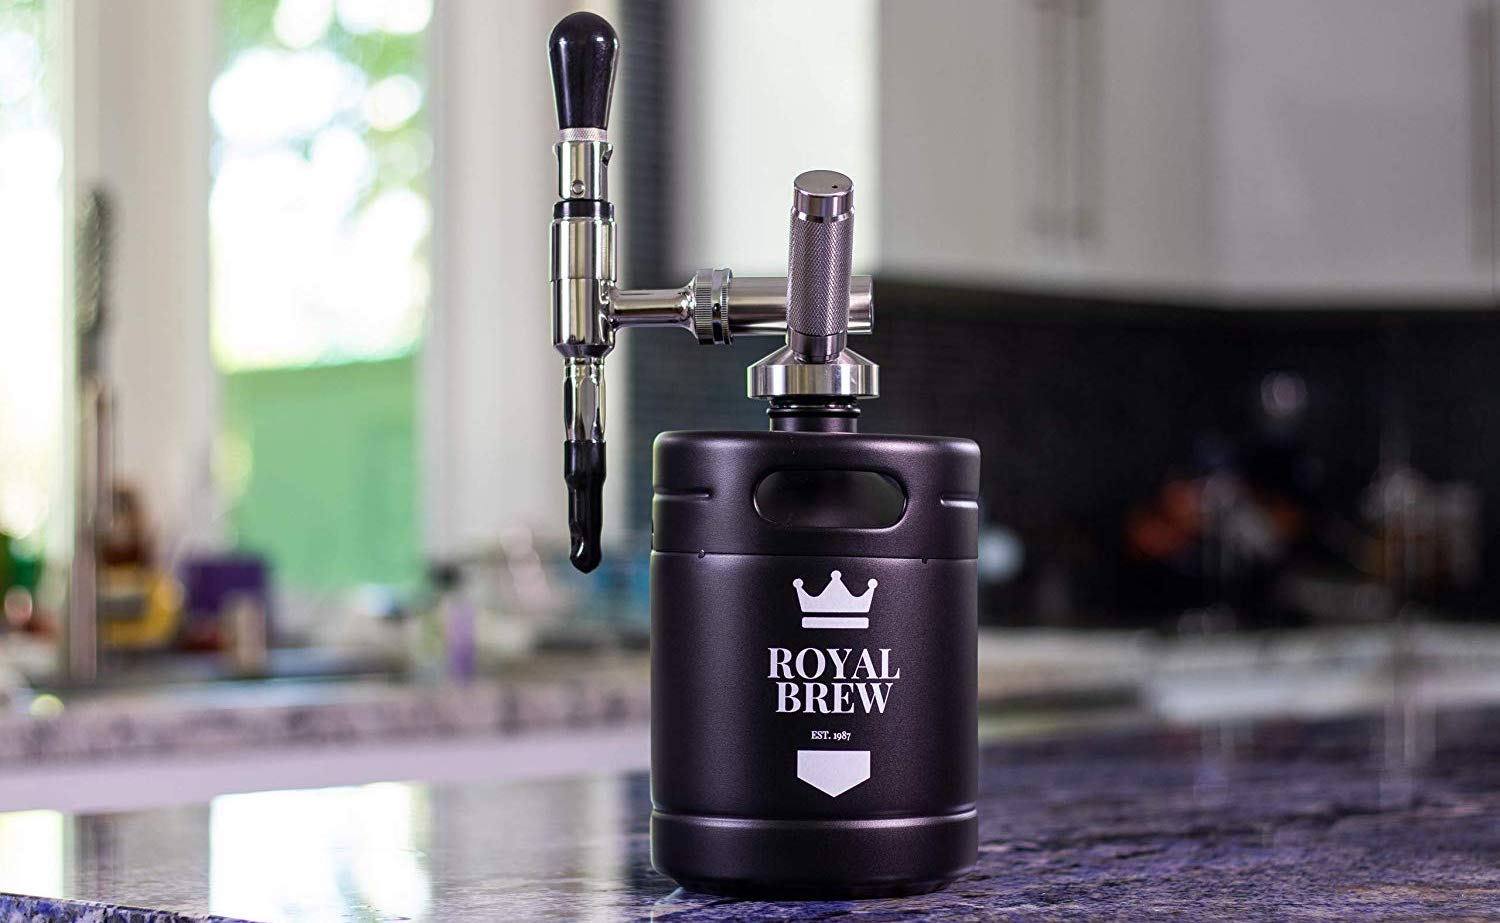 Royal Brew Cold Brew Maker Coffee Keg provides you with endless nitro-infused iced coffee